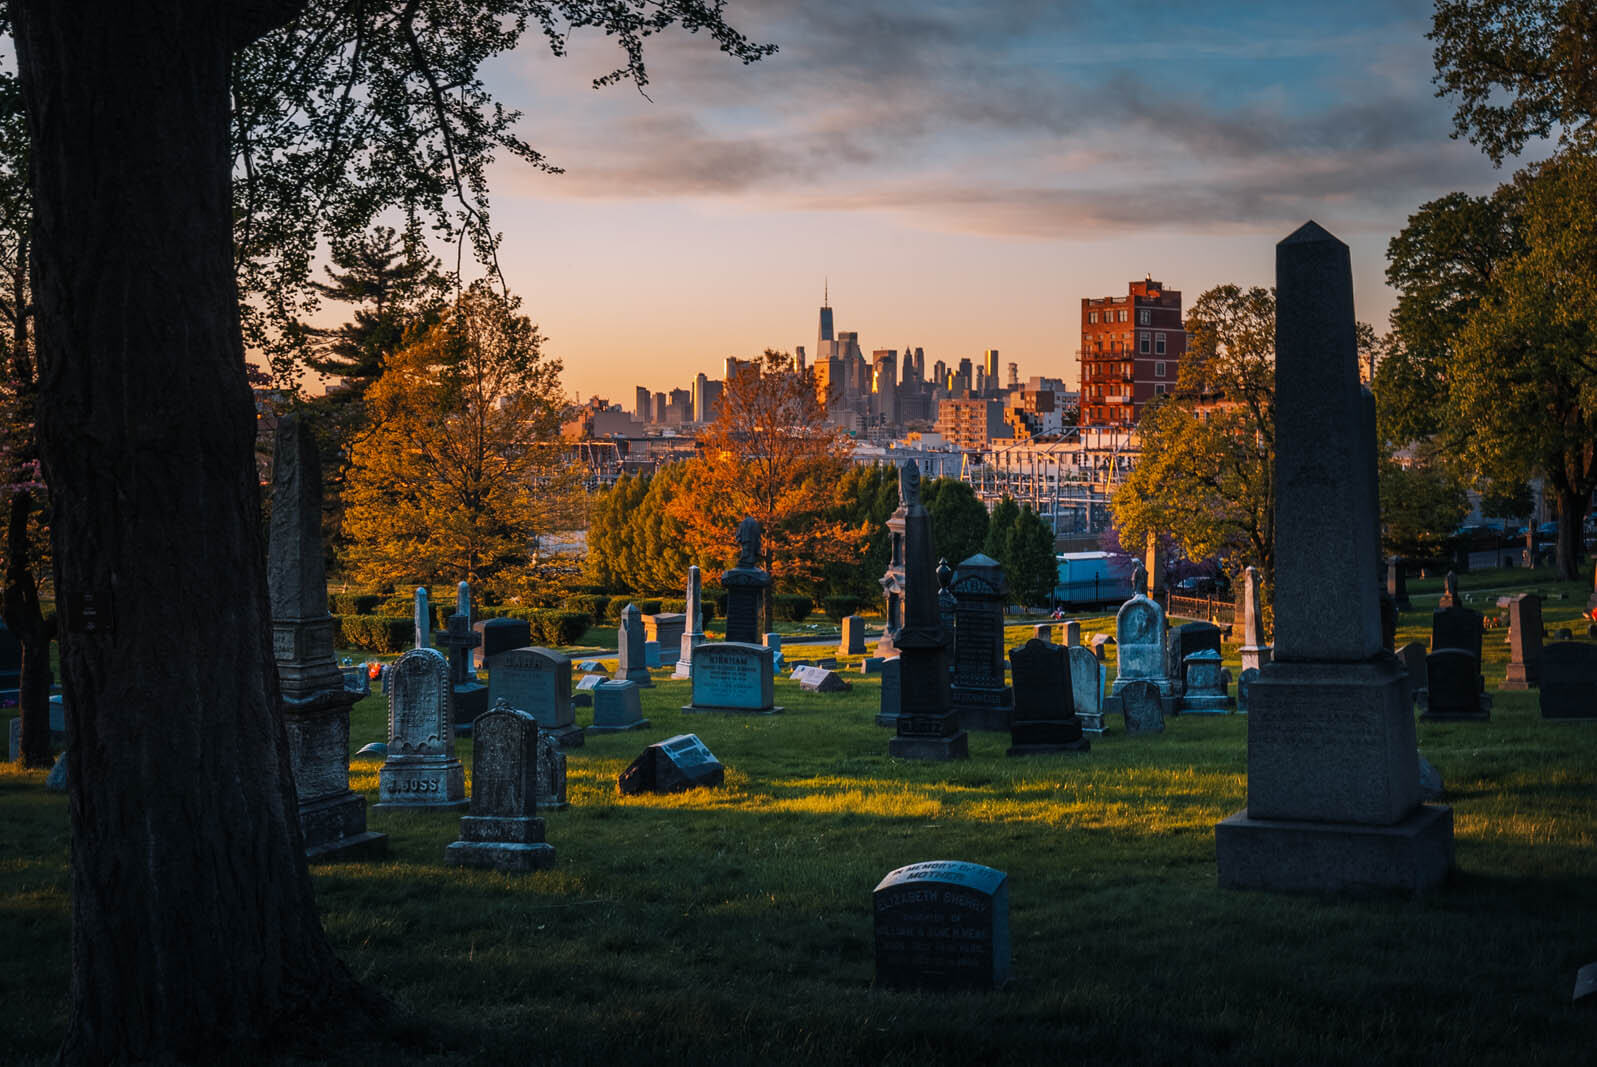 gorgeous sunset view at Green-wood cemetery in Brooklyn